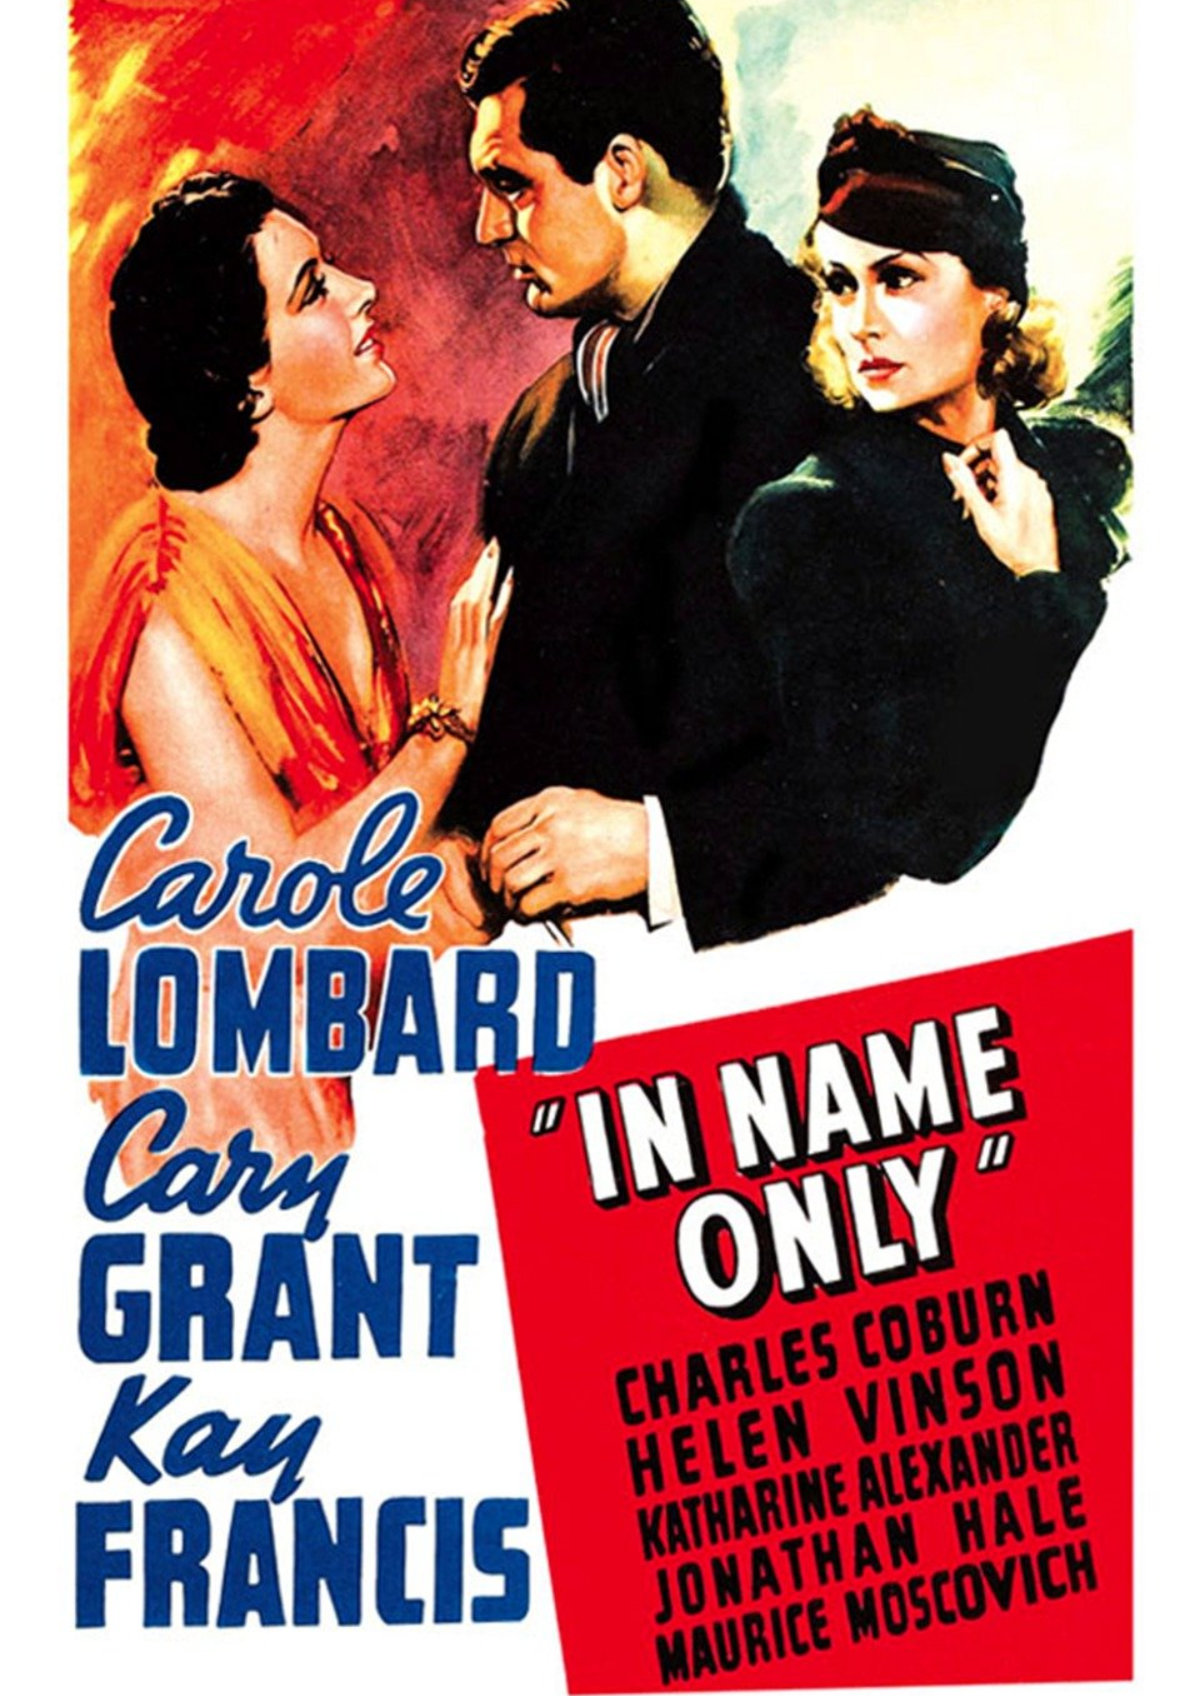 'In Name Only' movie poster